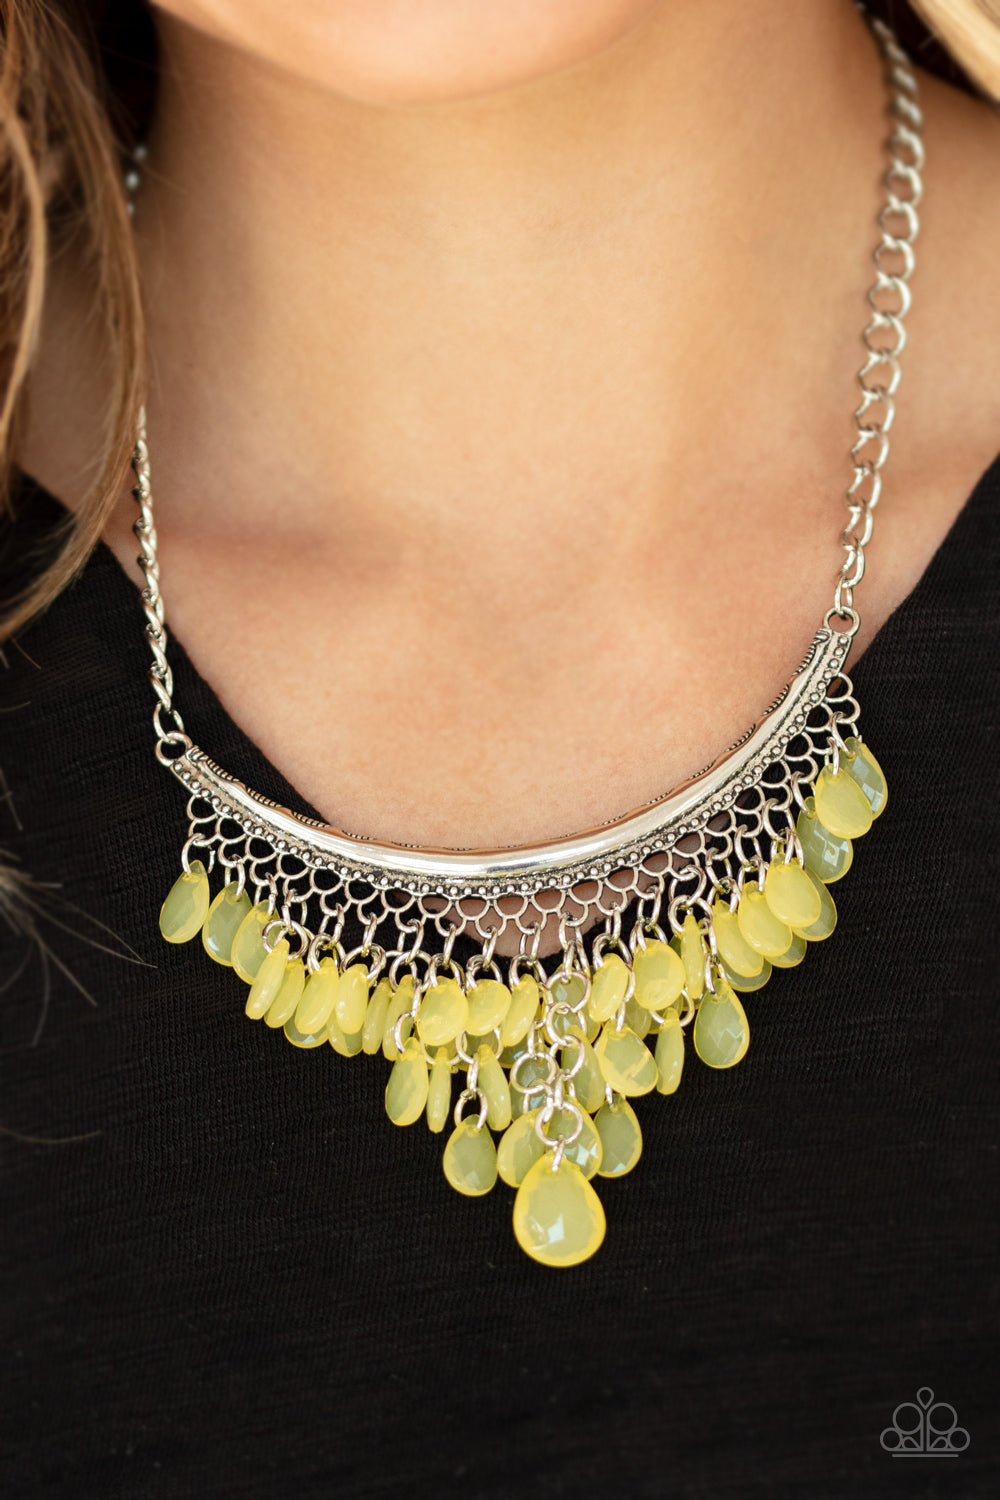 Paparazzi Jewelry & Accessories - Rio Rainfall - Yellow Necklace. Bling By Titia Boutique